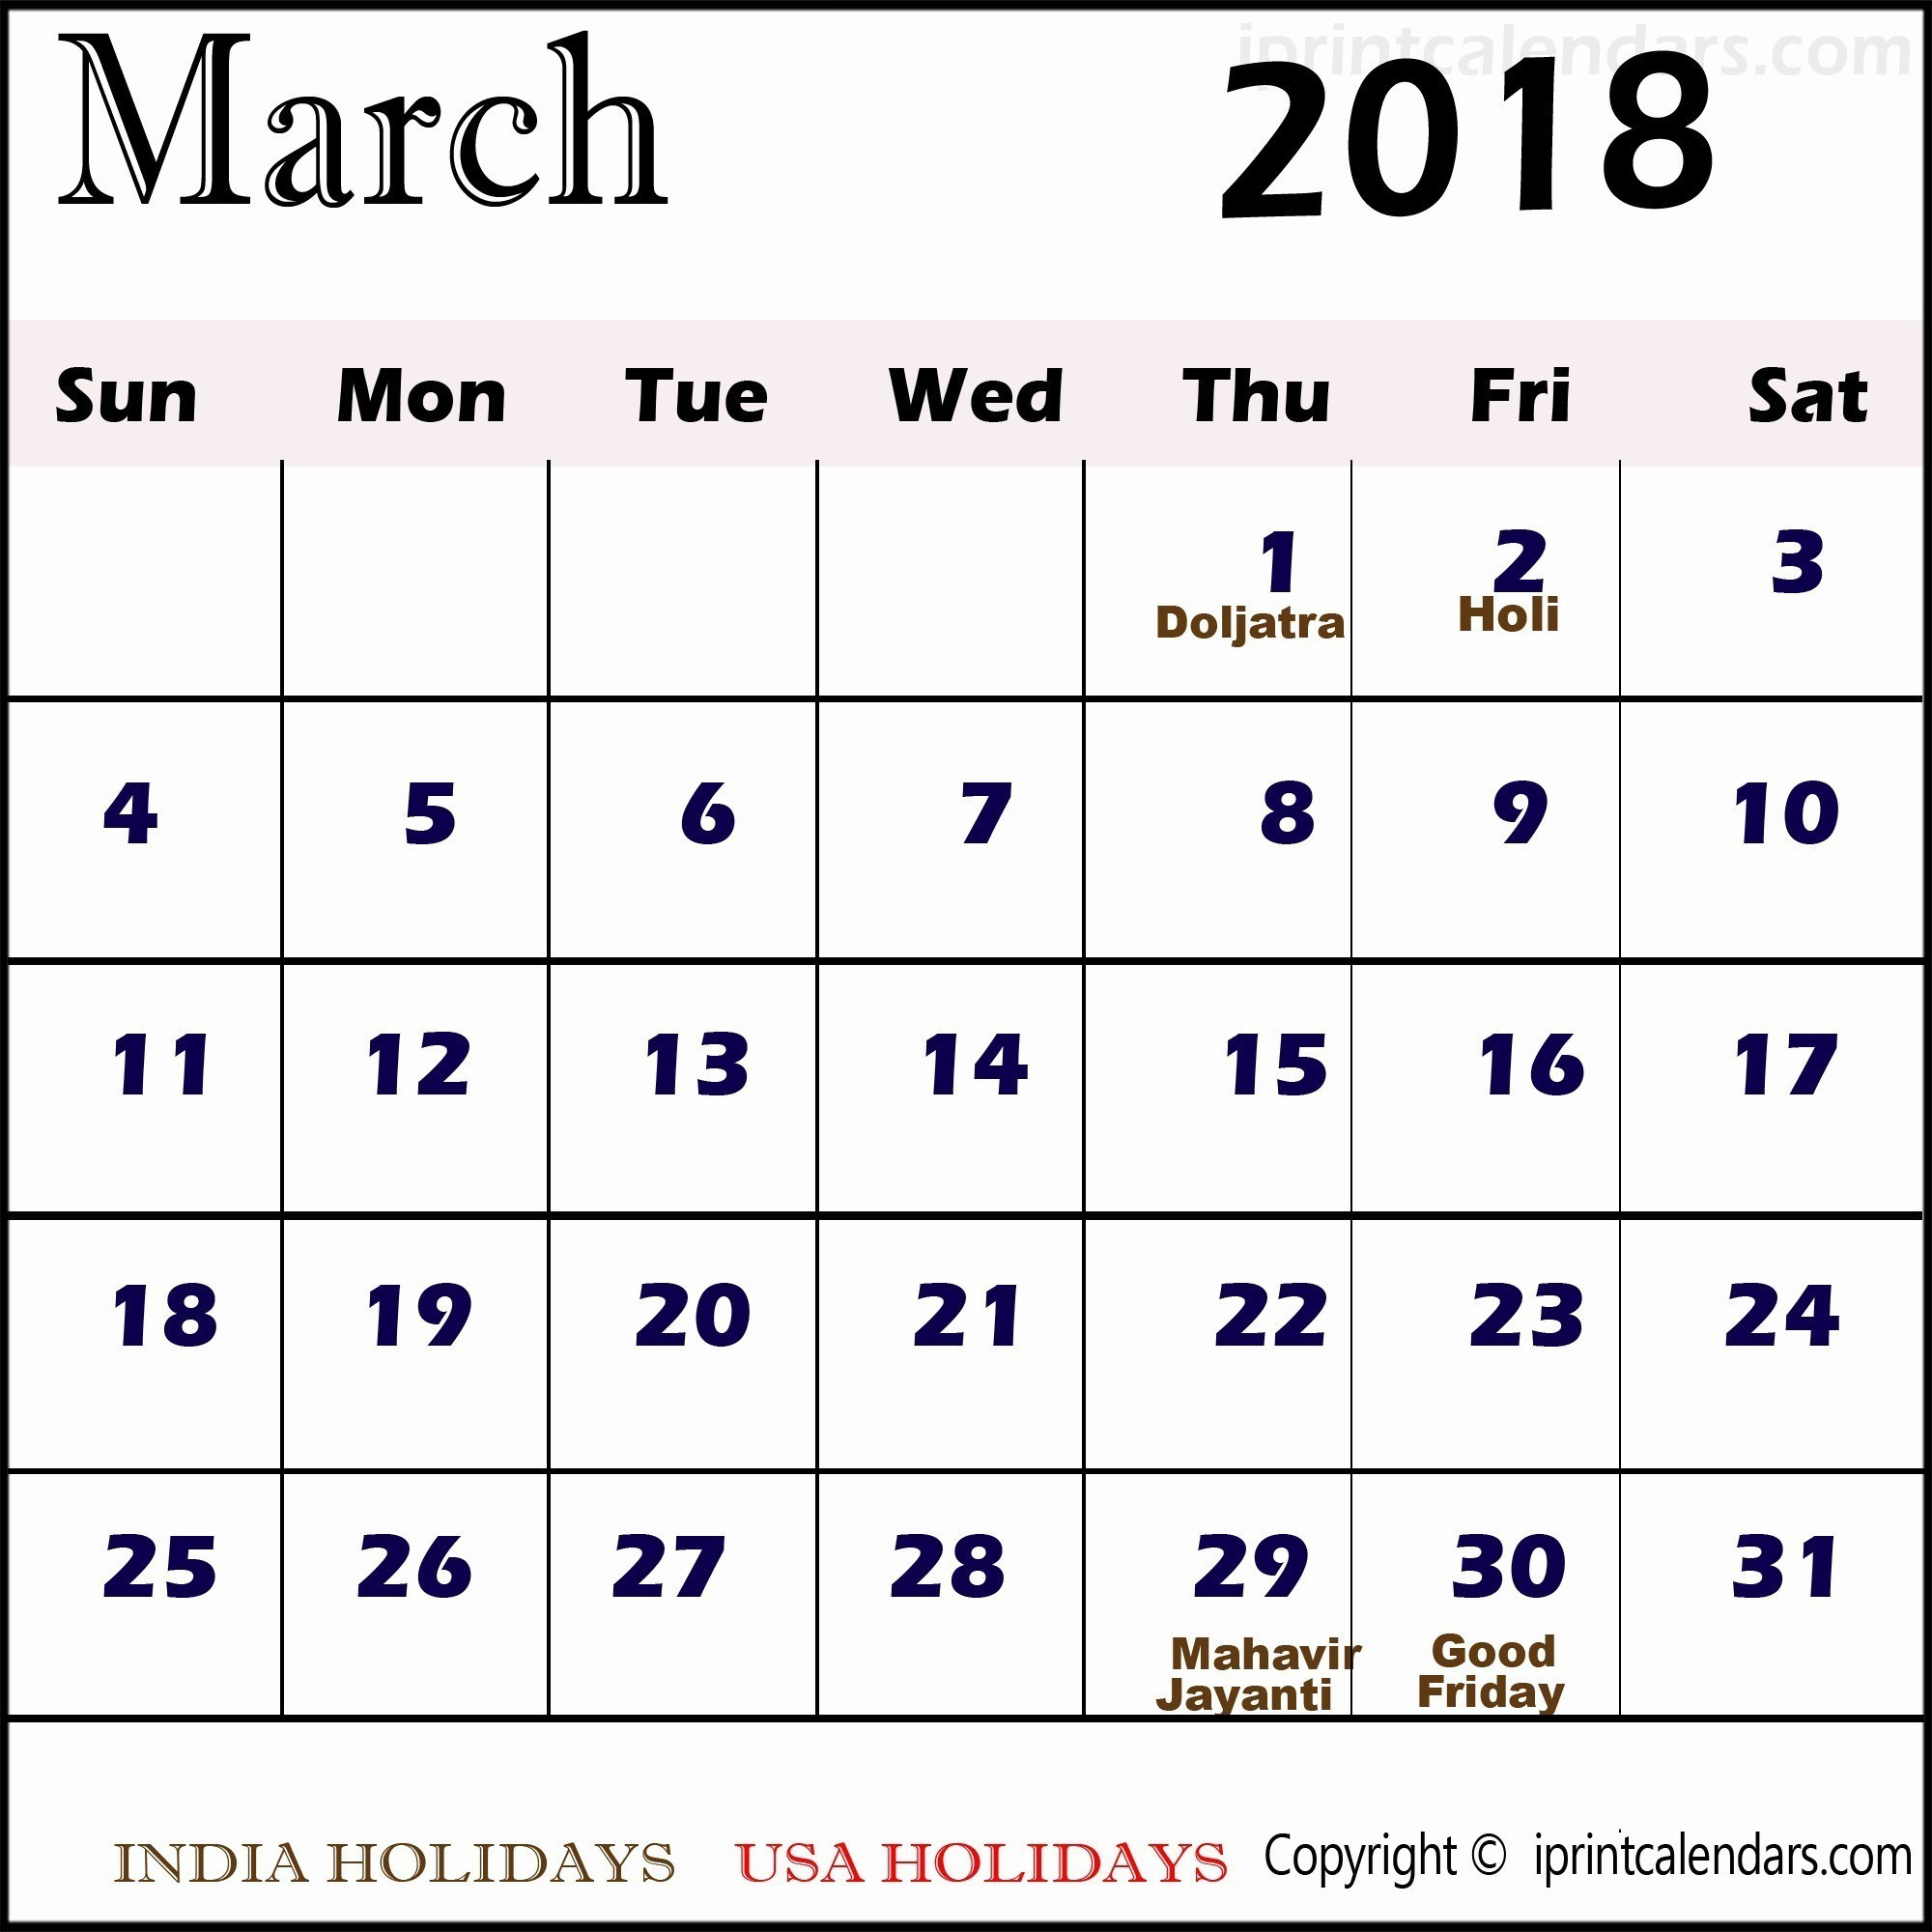 March Calendar Blank 2019 Más Arriba-a-fecha 2019 Calendar Holidays Of March Calendar Blank 2019 Más Recientemente Liberado Art Prints Lunar Calendar 2019